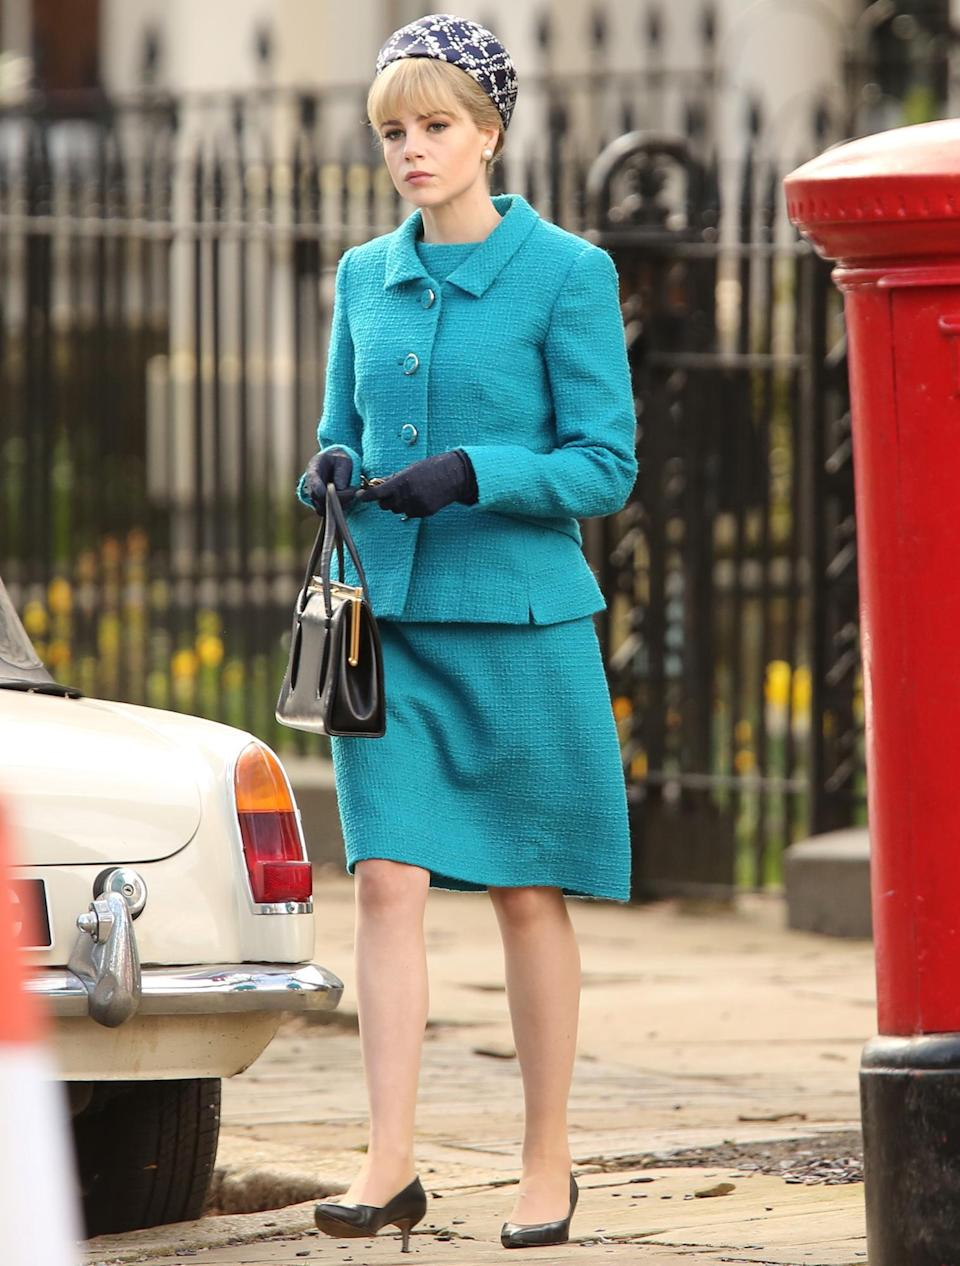 <p>Lucy Boynton was spotted filming ITV's<em> The Ipcress File </em>in Liverpool, England.</p>